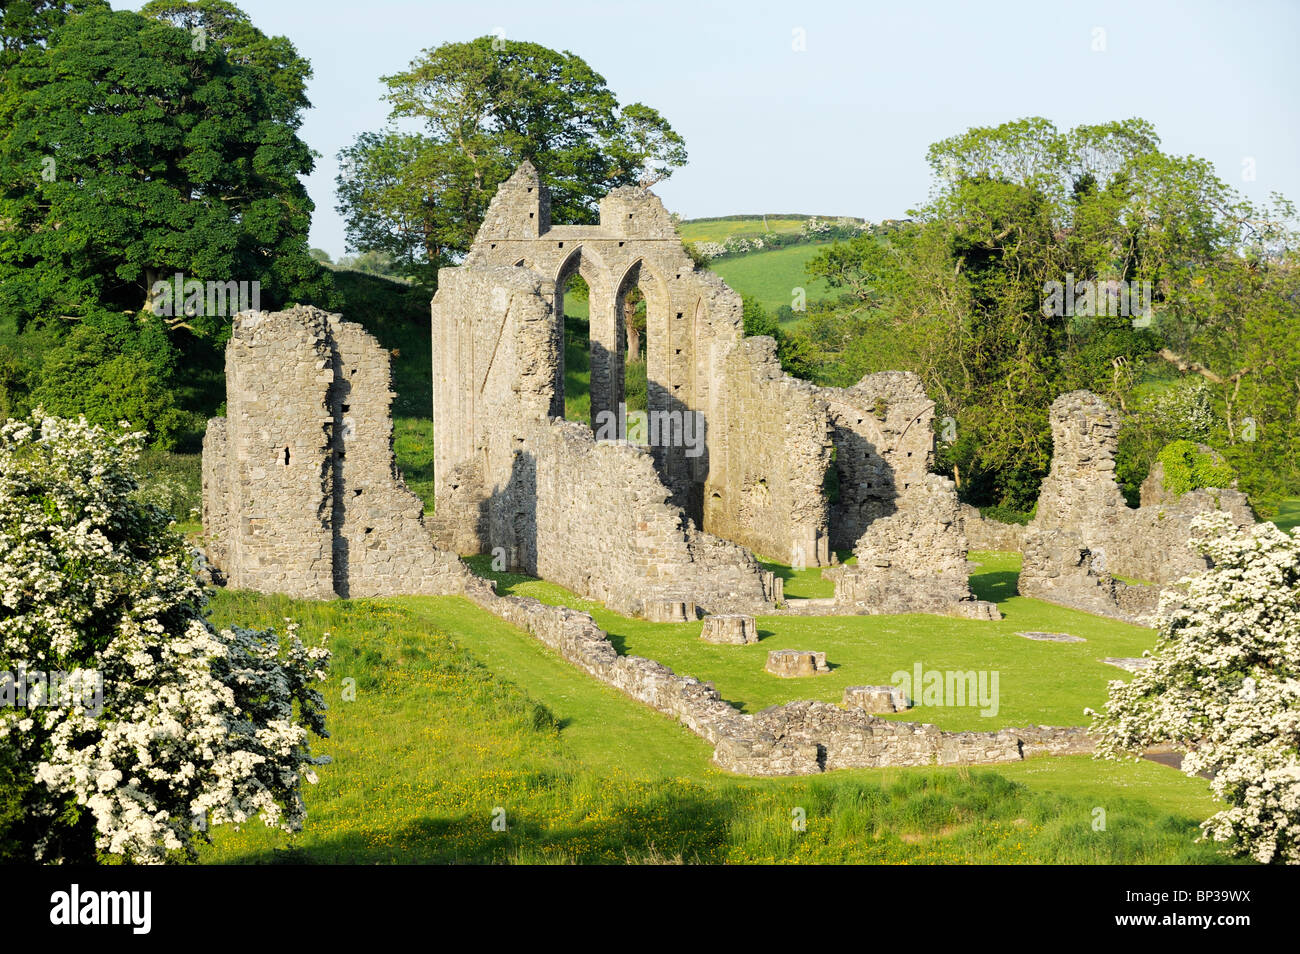 Inch Abbey near Downpatrick, County Down, Northern Ireland. Norman Cistercian abbey founded 1180 by John de Courcy. - Stock Image